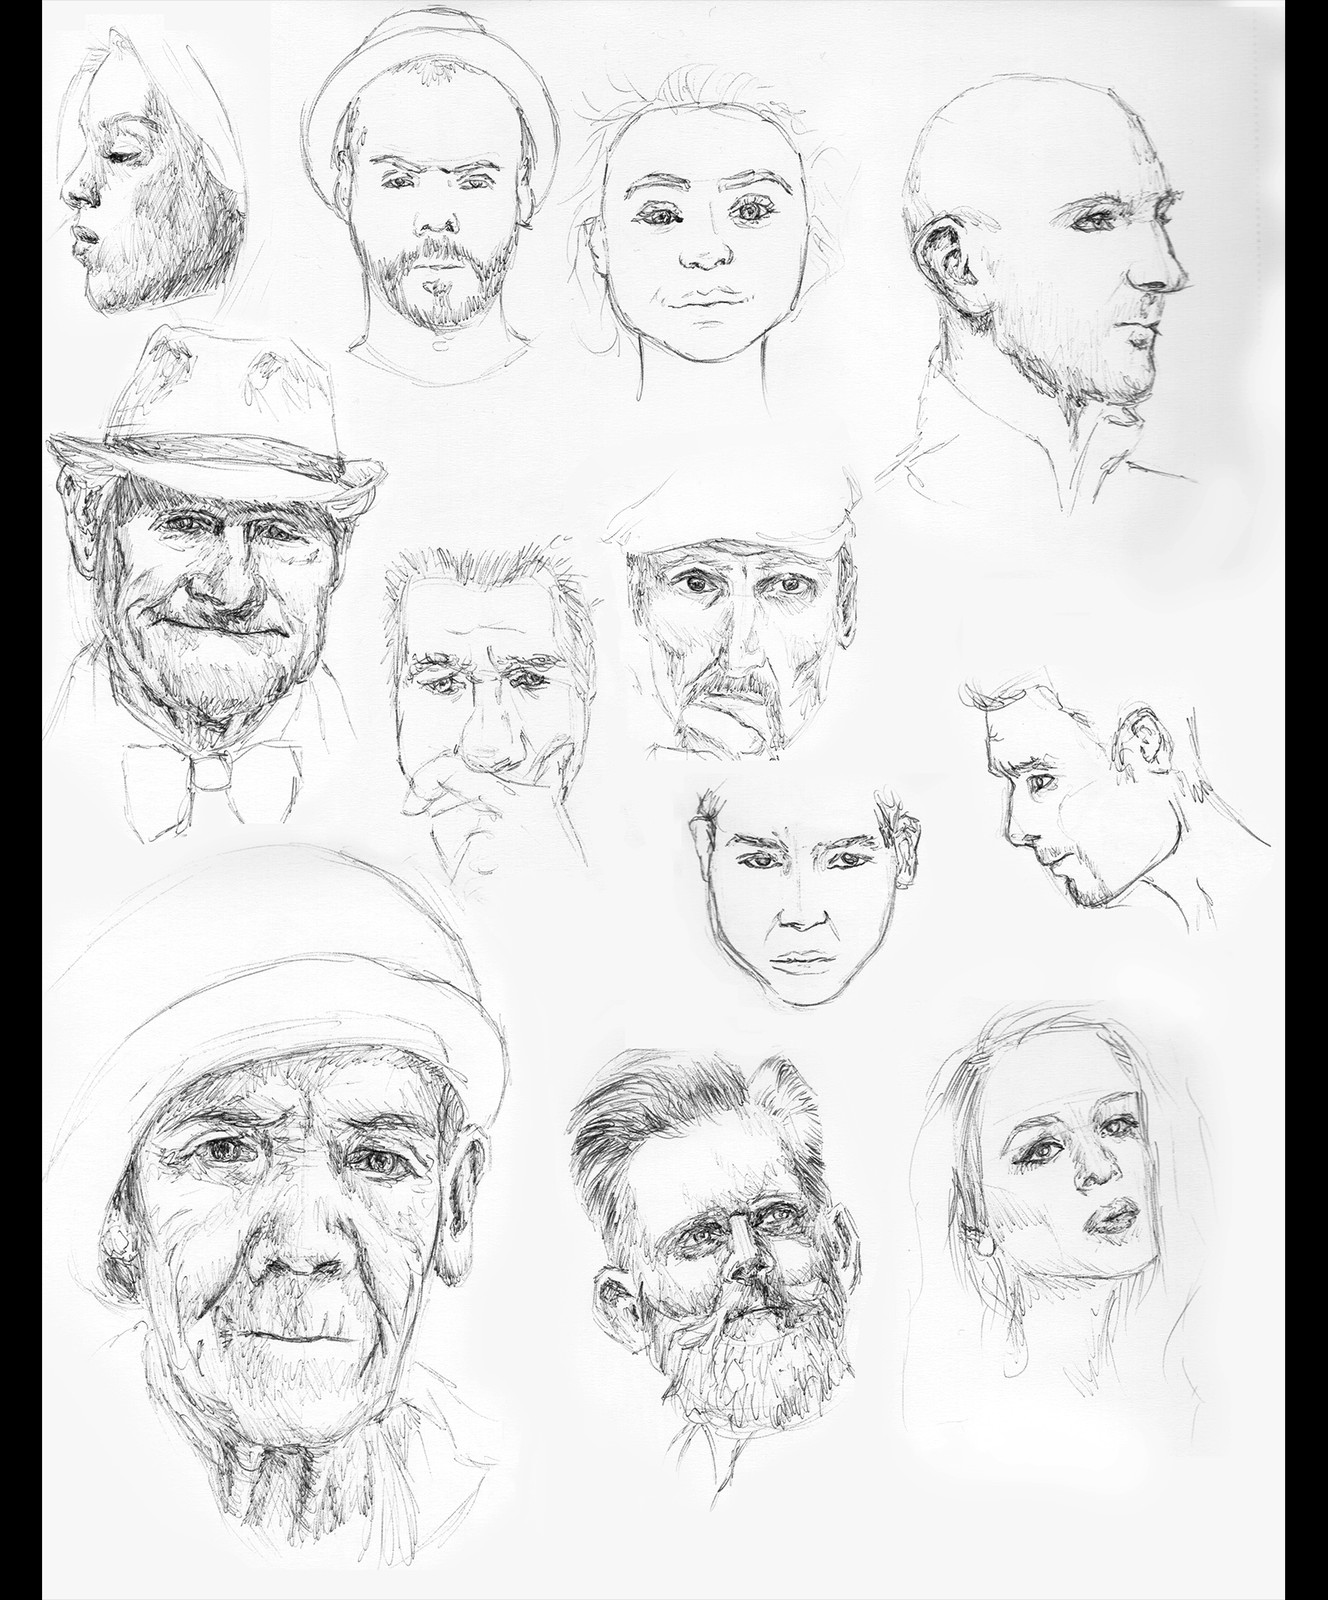 Small sketches referencing royalty free images.